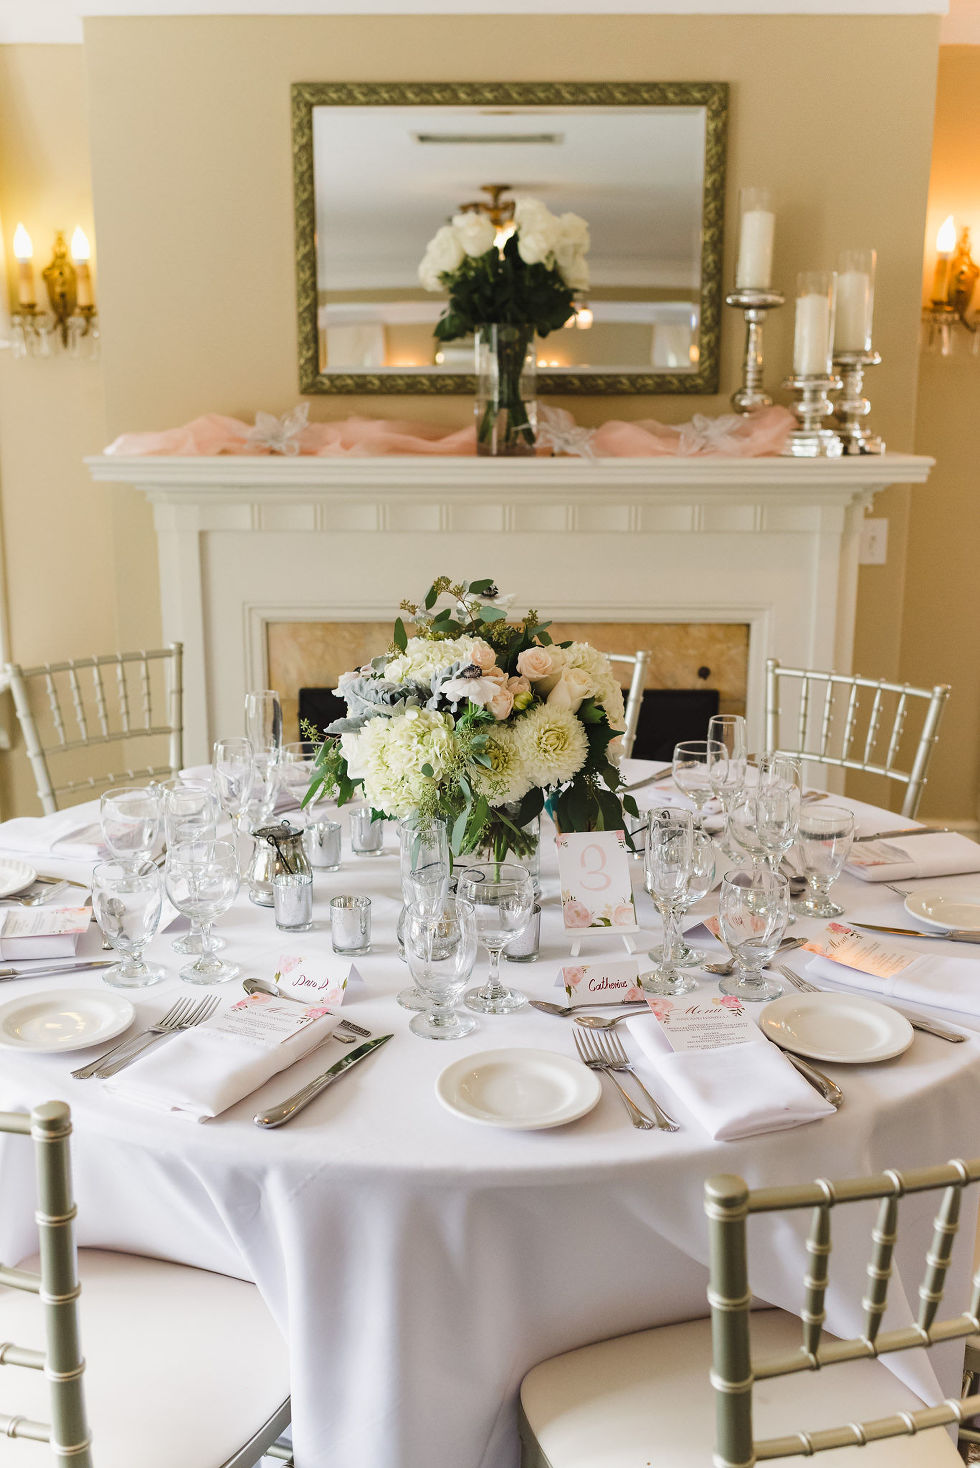 table set with plates, cutlery, and floral bouquet in front of a decorated mantle for a wedding at La Paletta Mansion in Burlington Ontario